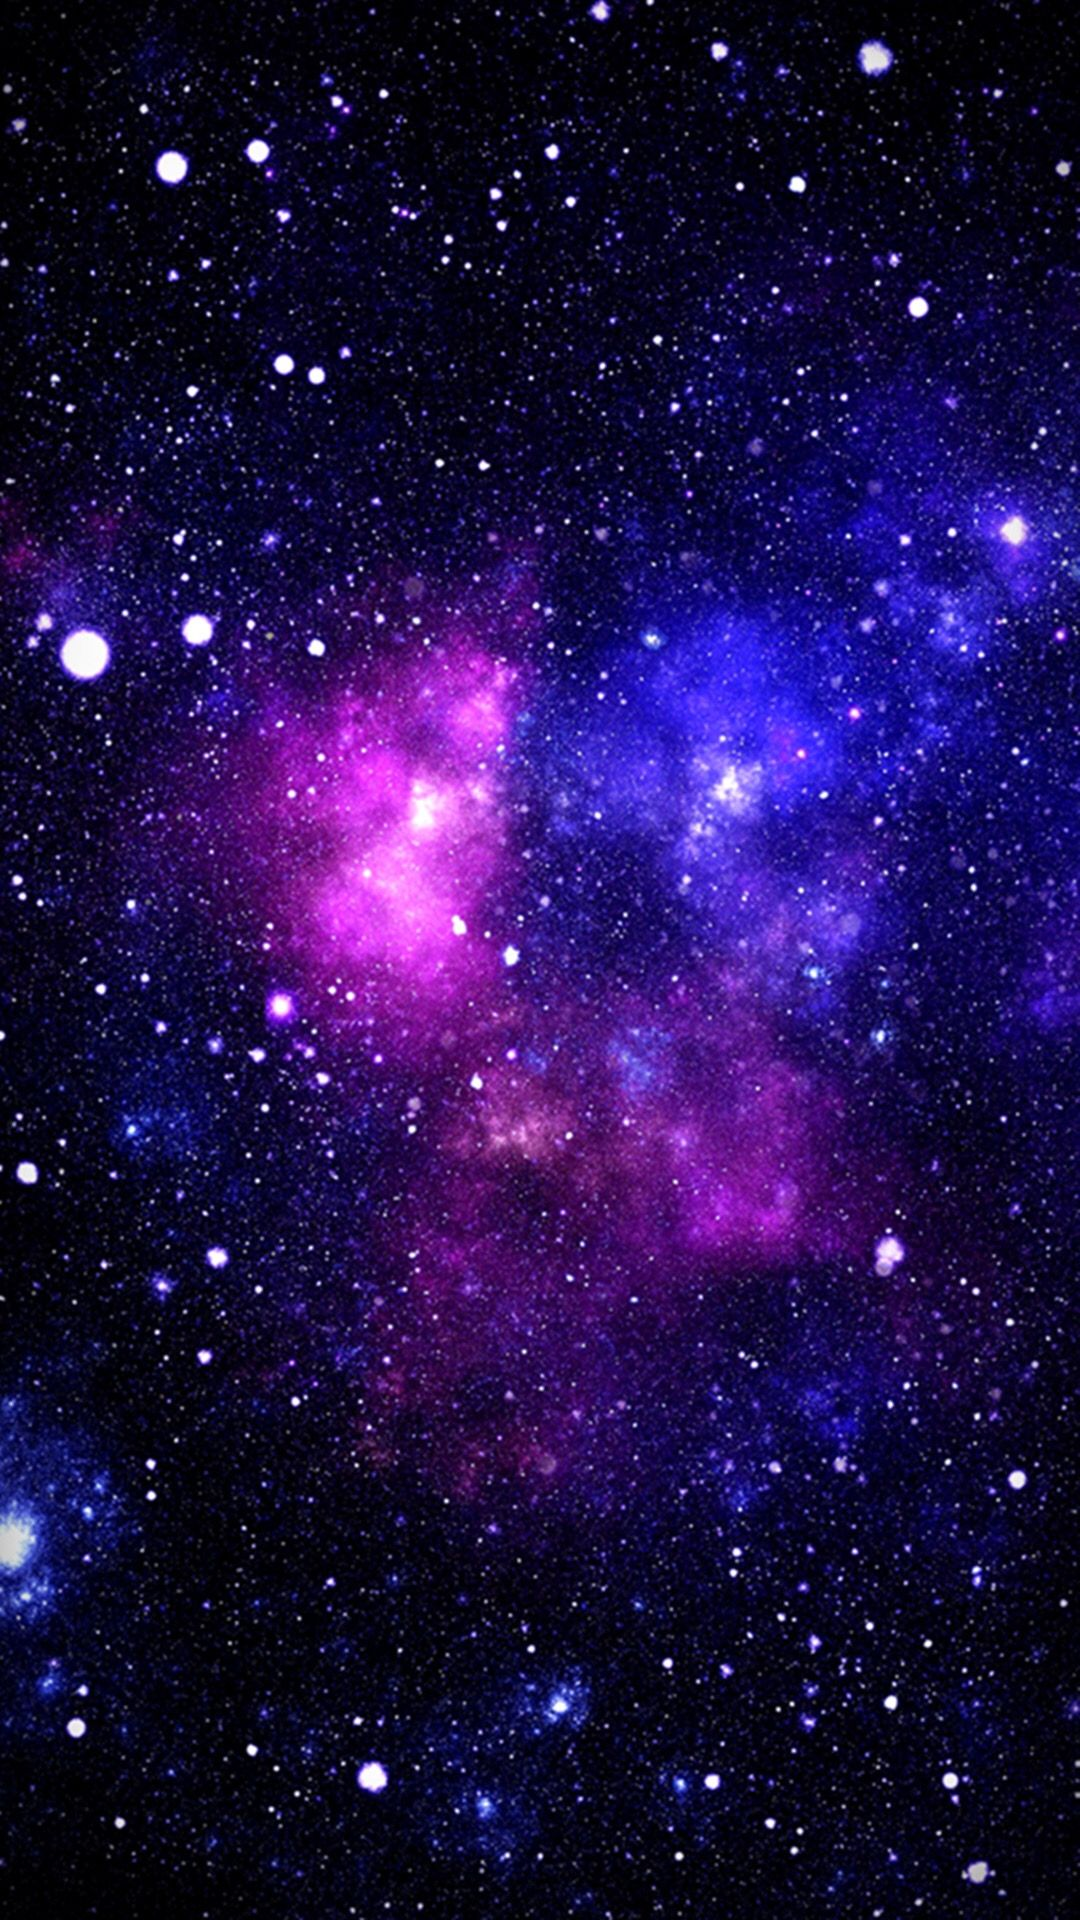 Purple And Blue Night Galaxy Wallpaper Star Wallpaper Galaxy Background